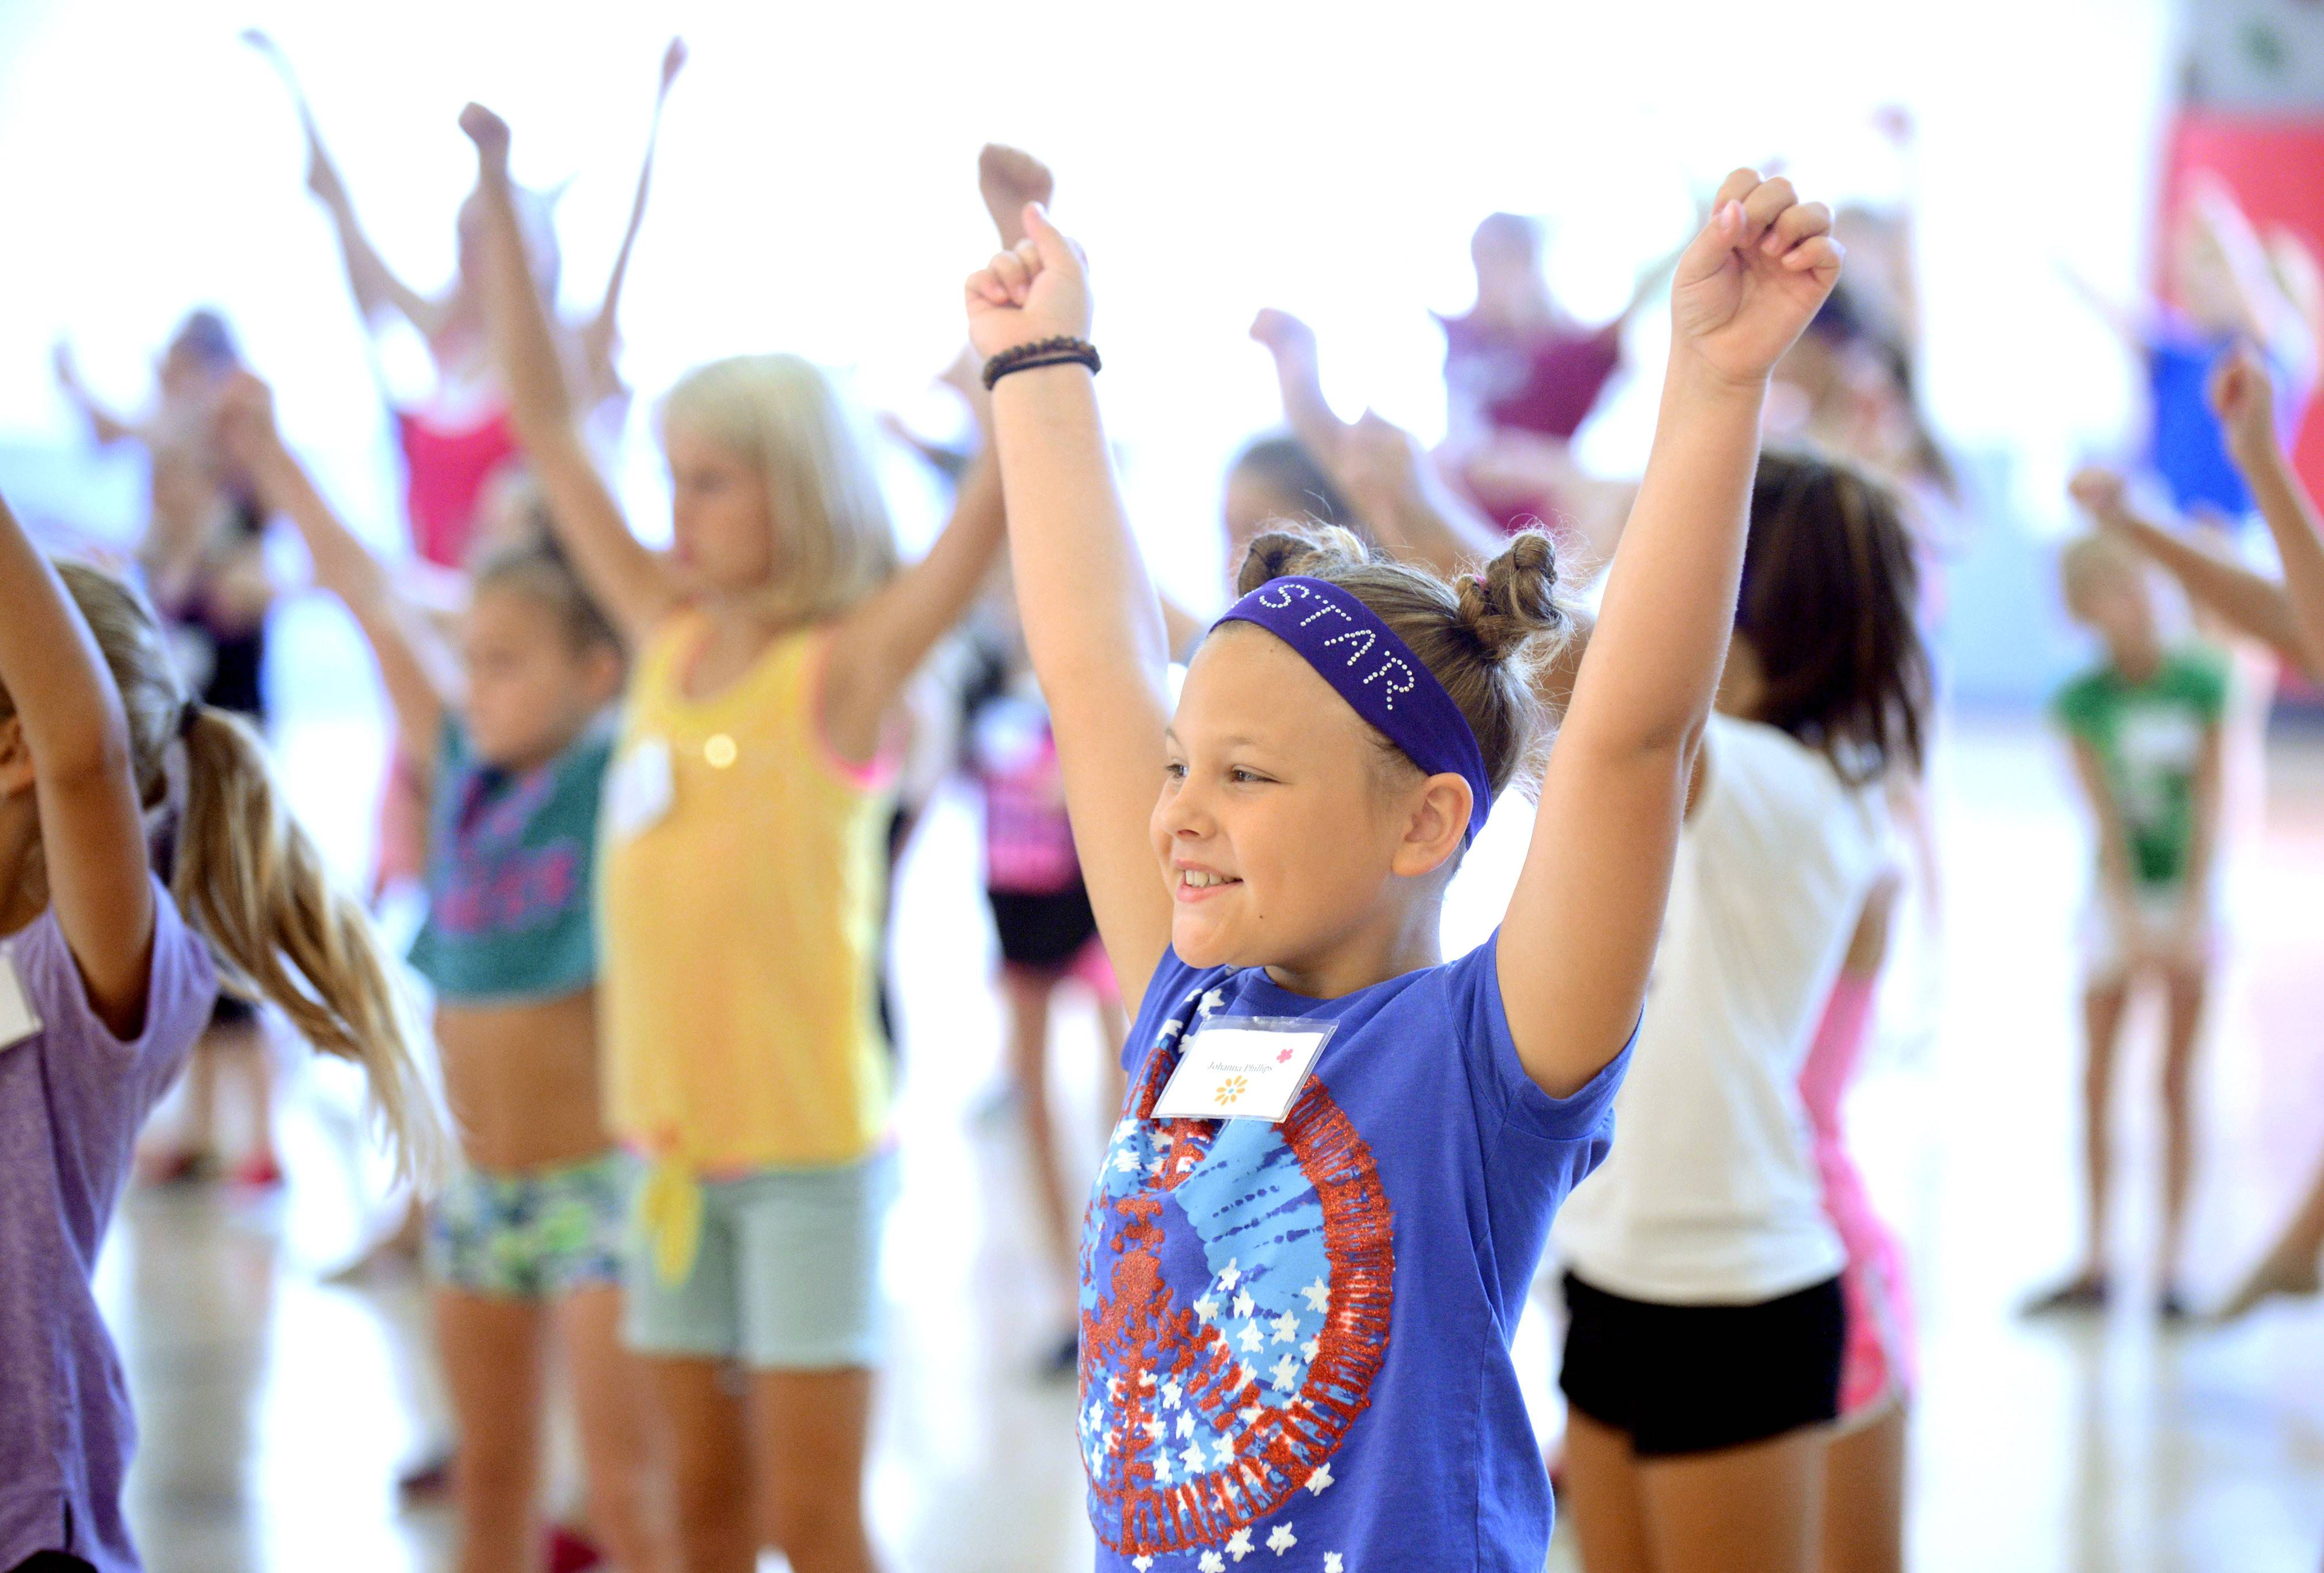 Johanna Phillips, 8, of St. Charles practices the cheer to the school song for St. Charles North High School at the drill and dance teams' 15th annual dance clinic for elementary and middle school students at Bell-Graham Elementary School in St. Charles.